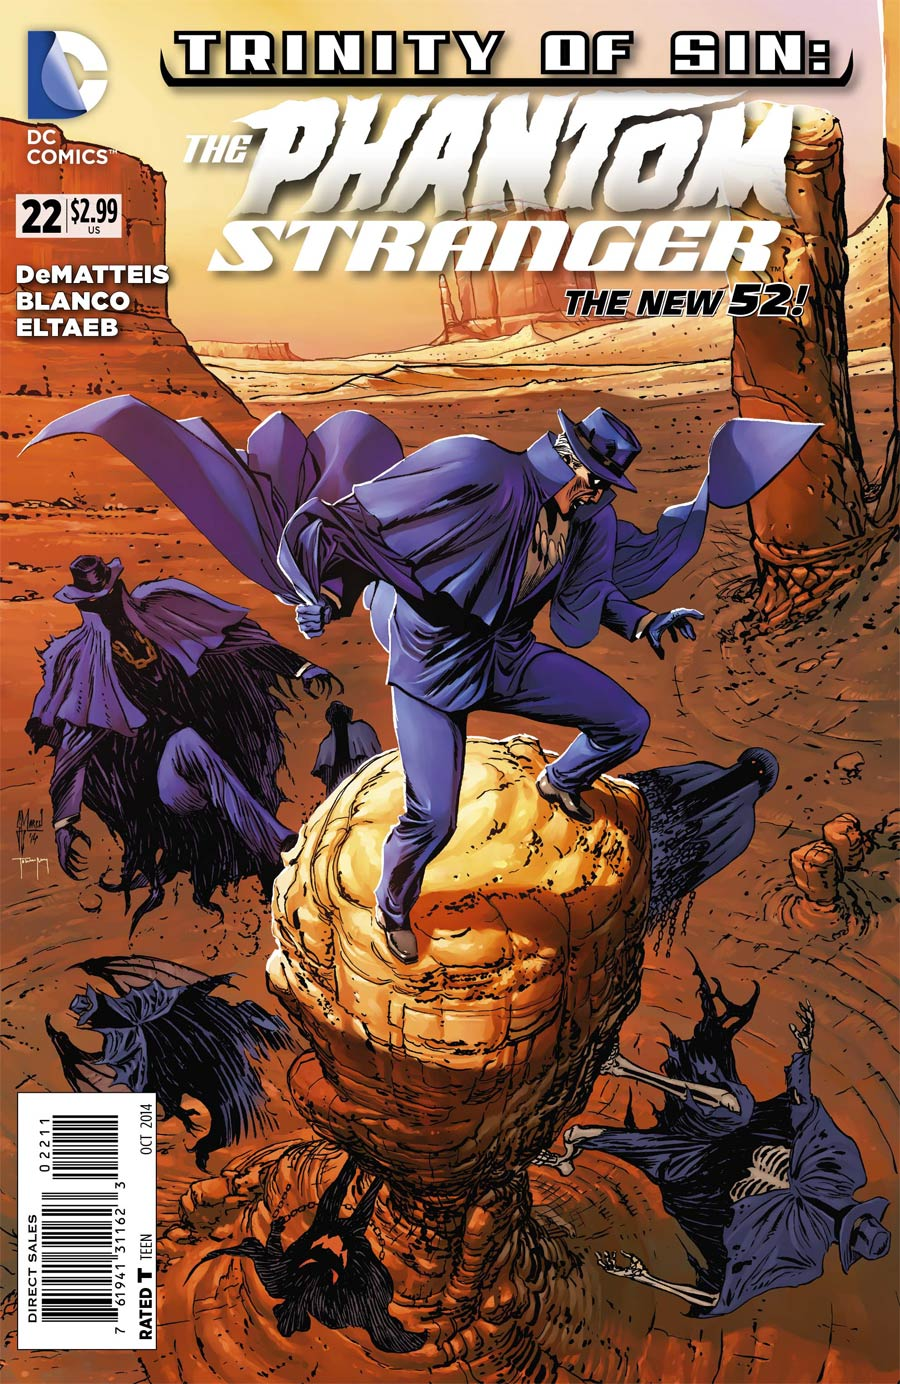 Trinity Of Sin Phantom Stranger #22